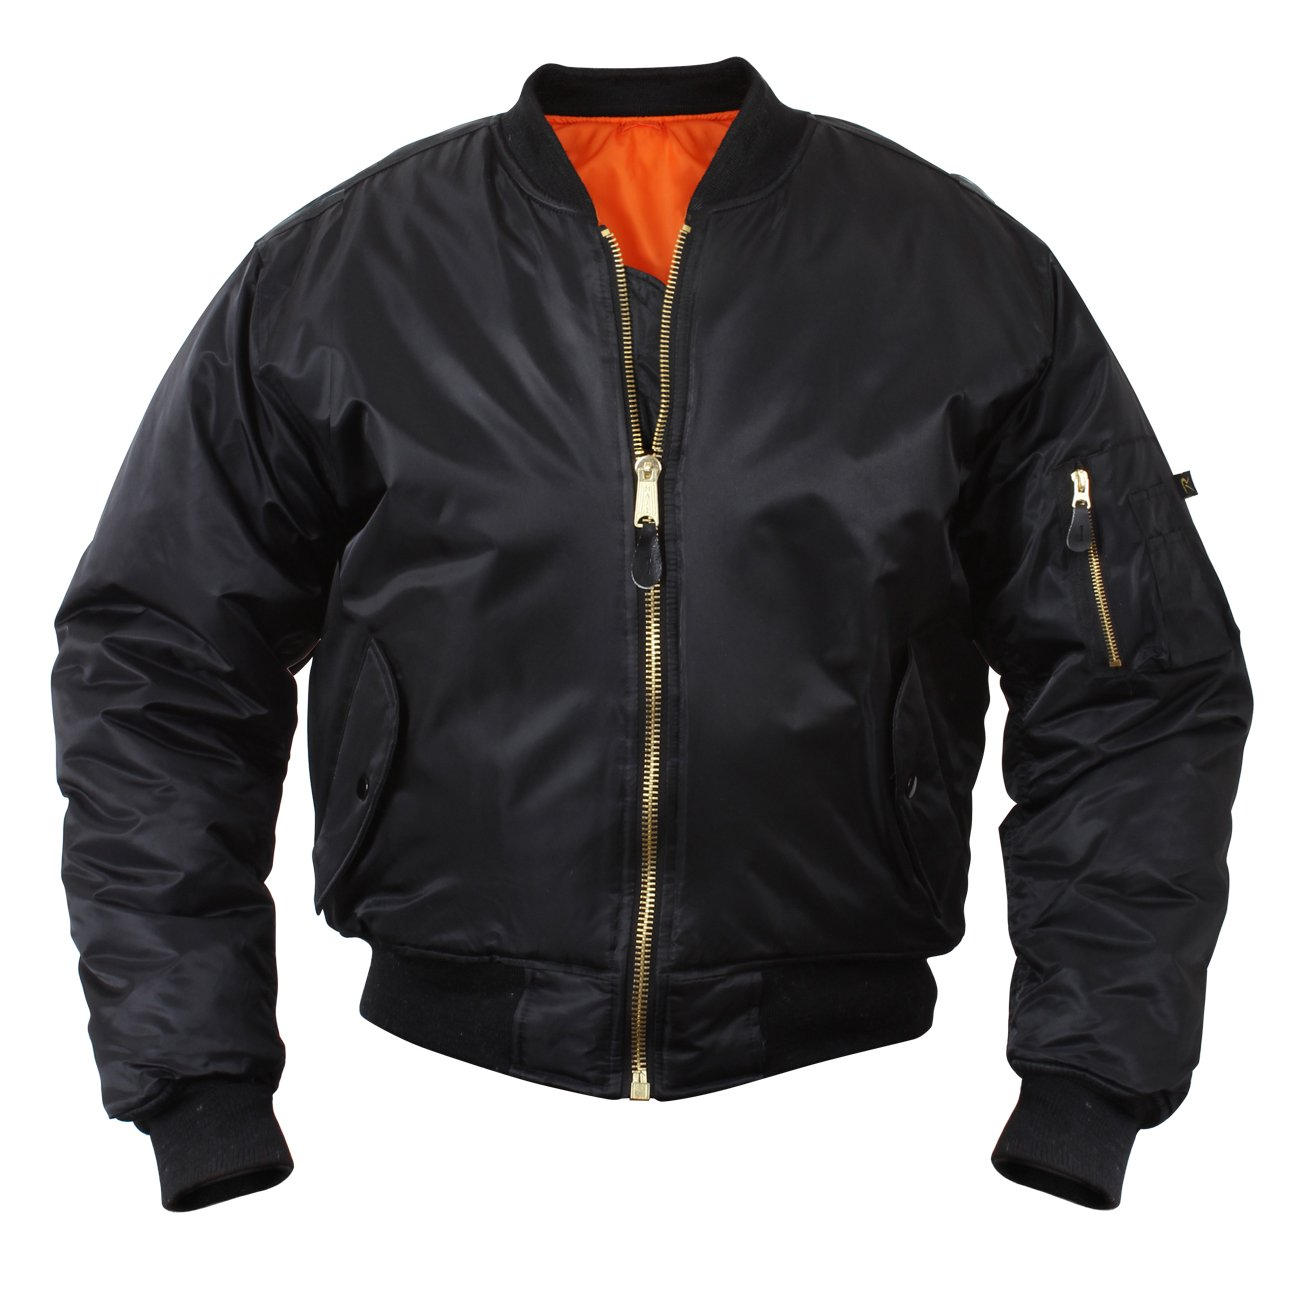 Top 10 Best bomber jacket